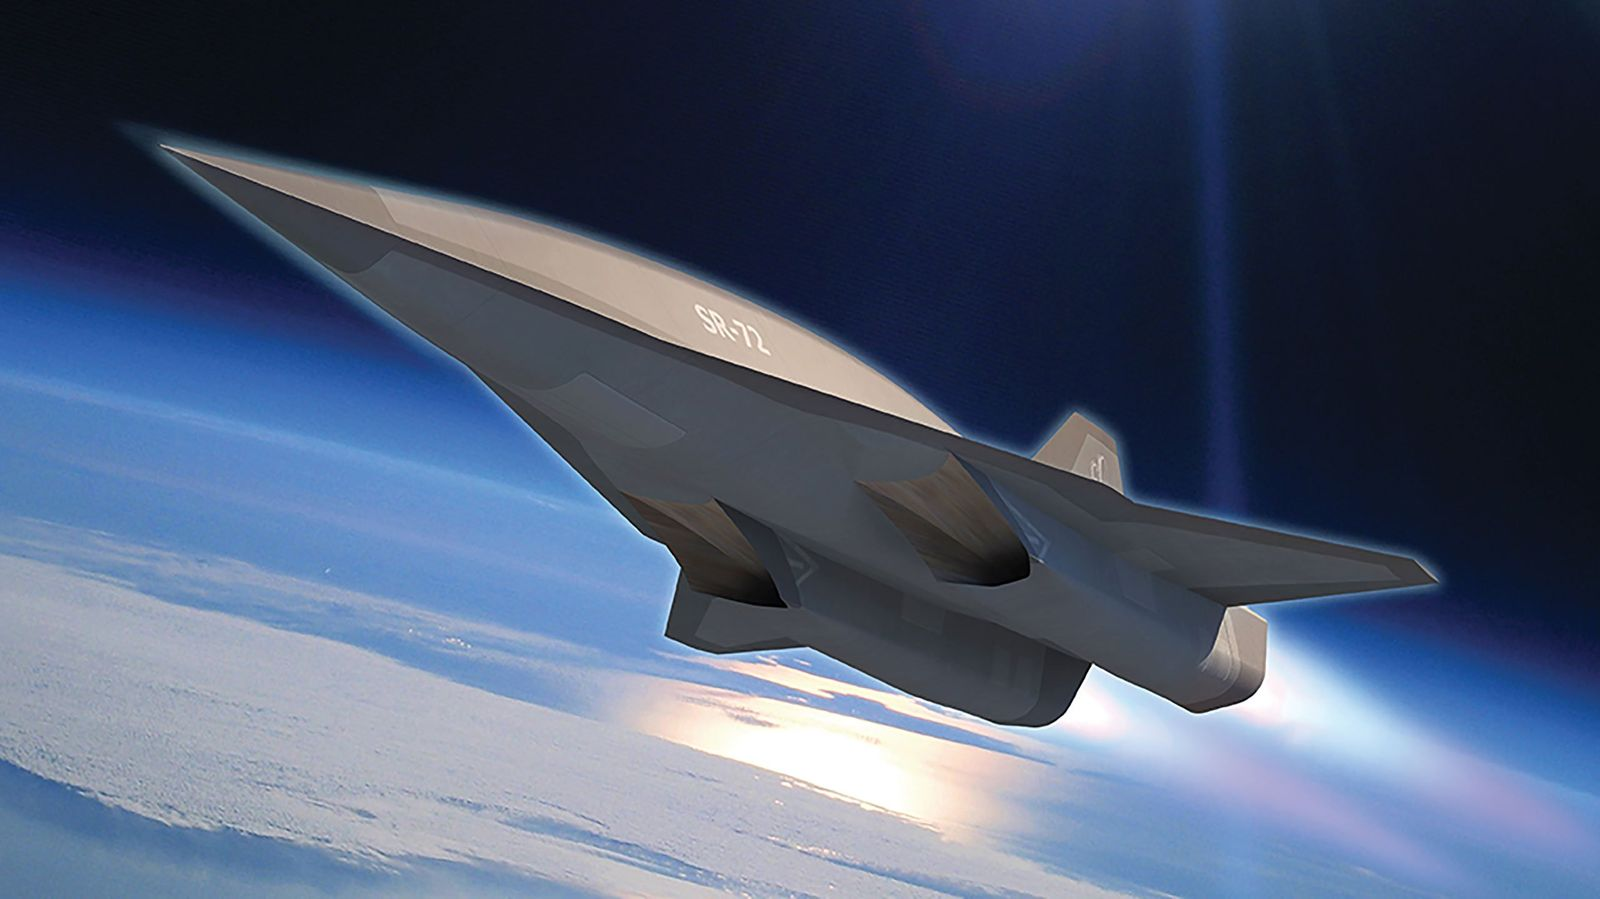 The 'SR-72 Bomber': A 21st Century SR-71 with Lots of Weapons